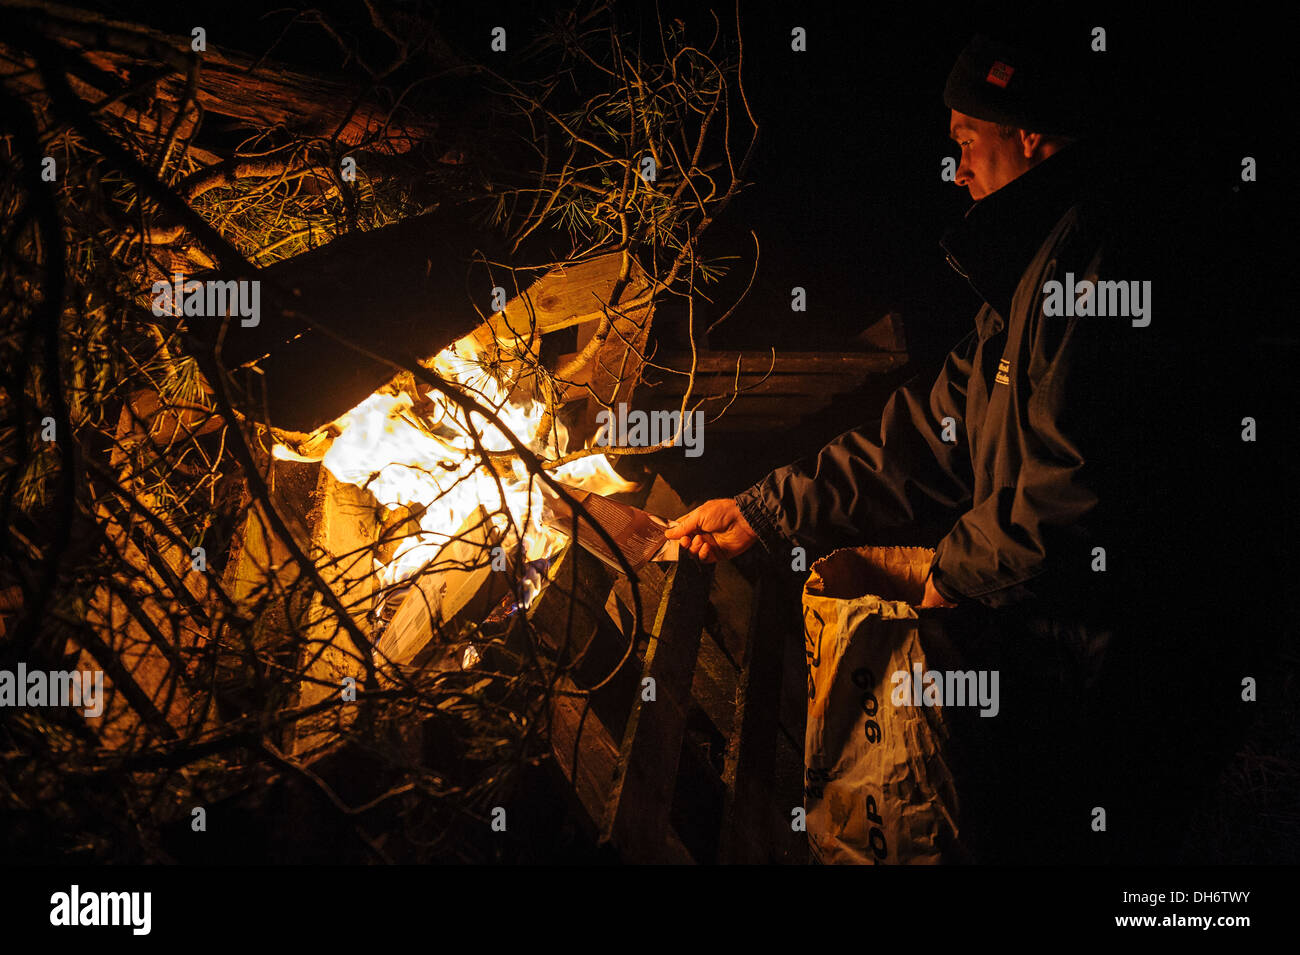 Lighting a bonfire on Guy Fawkes night - Stock Image